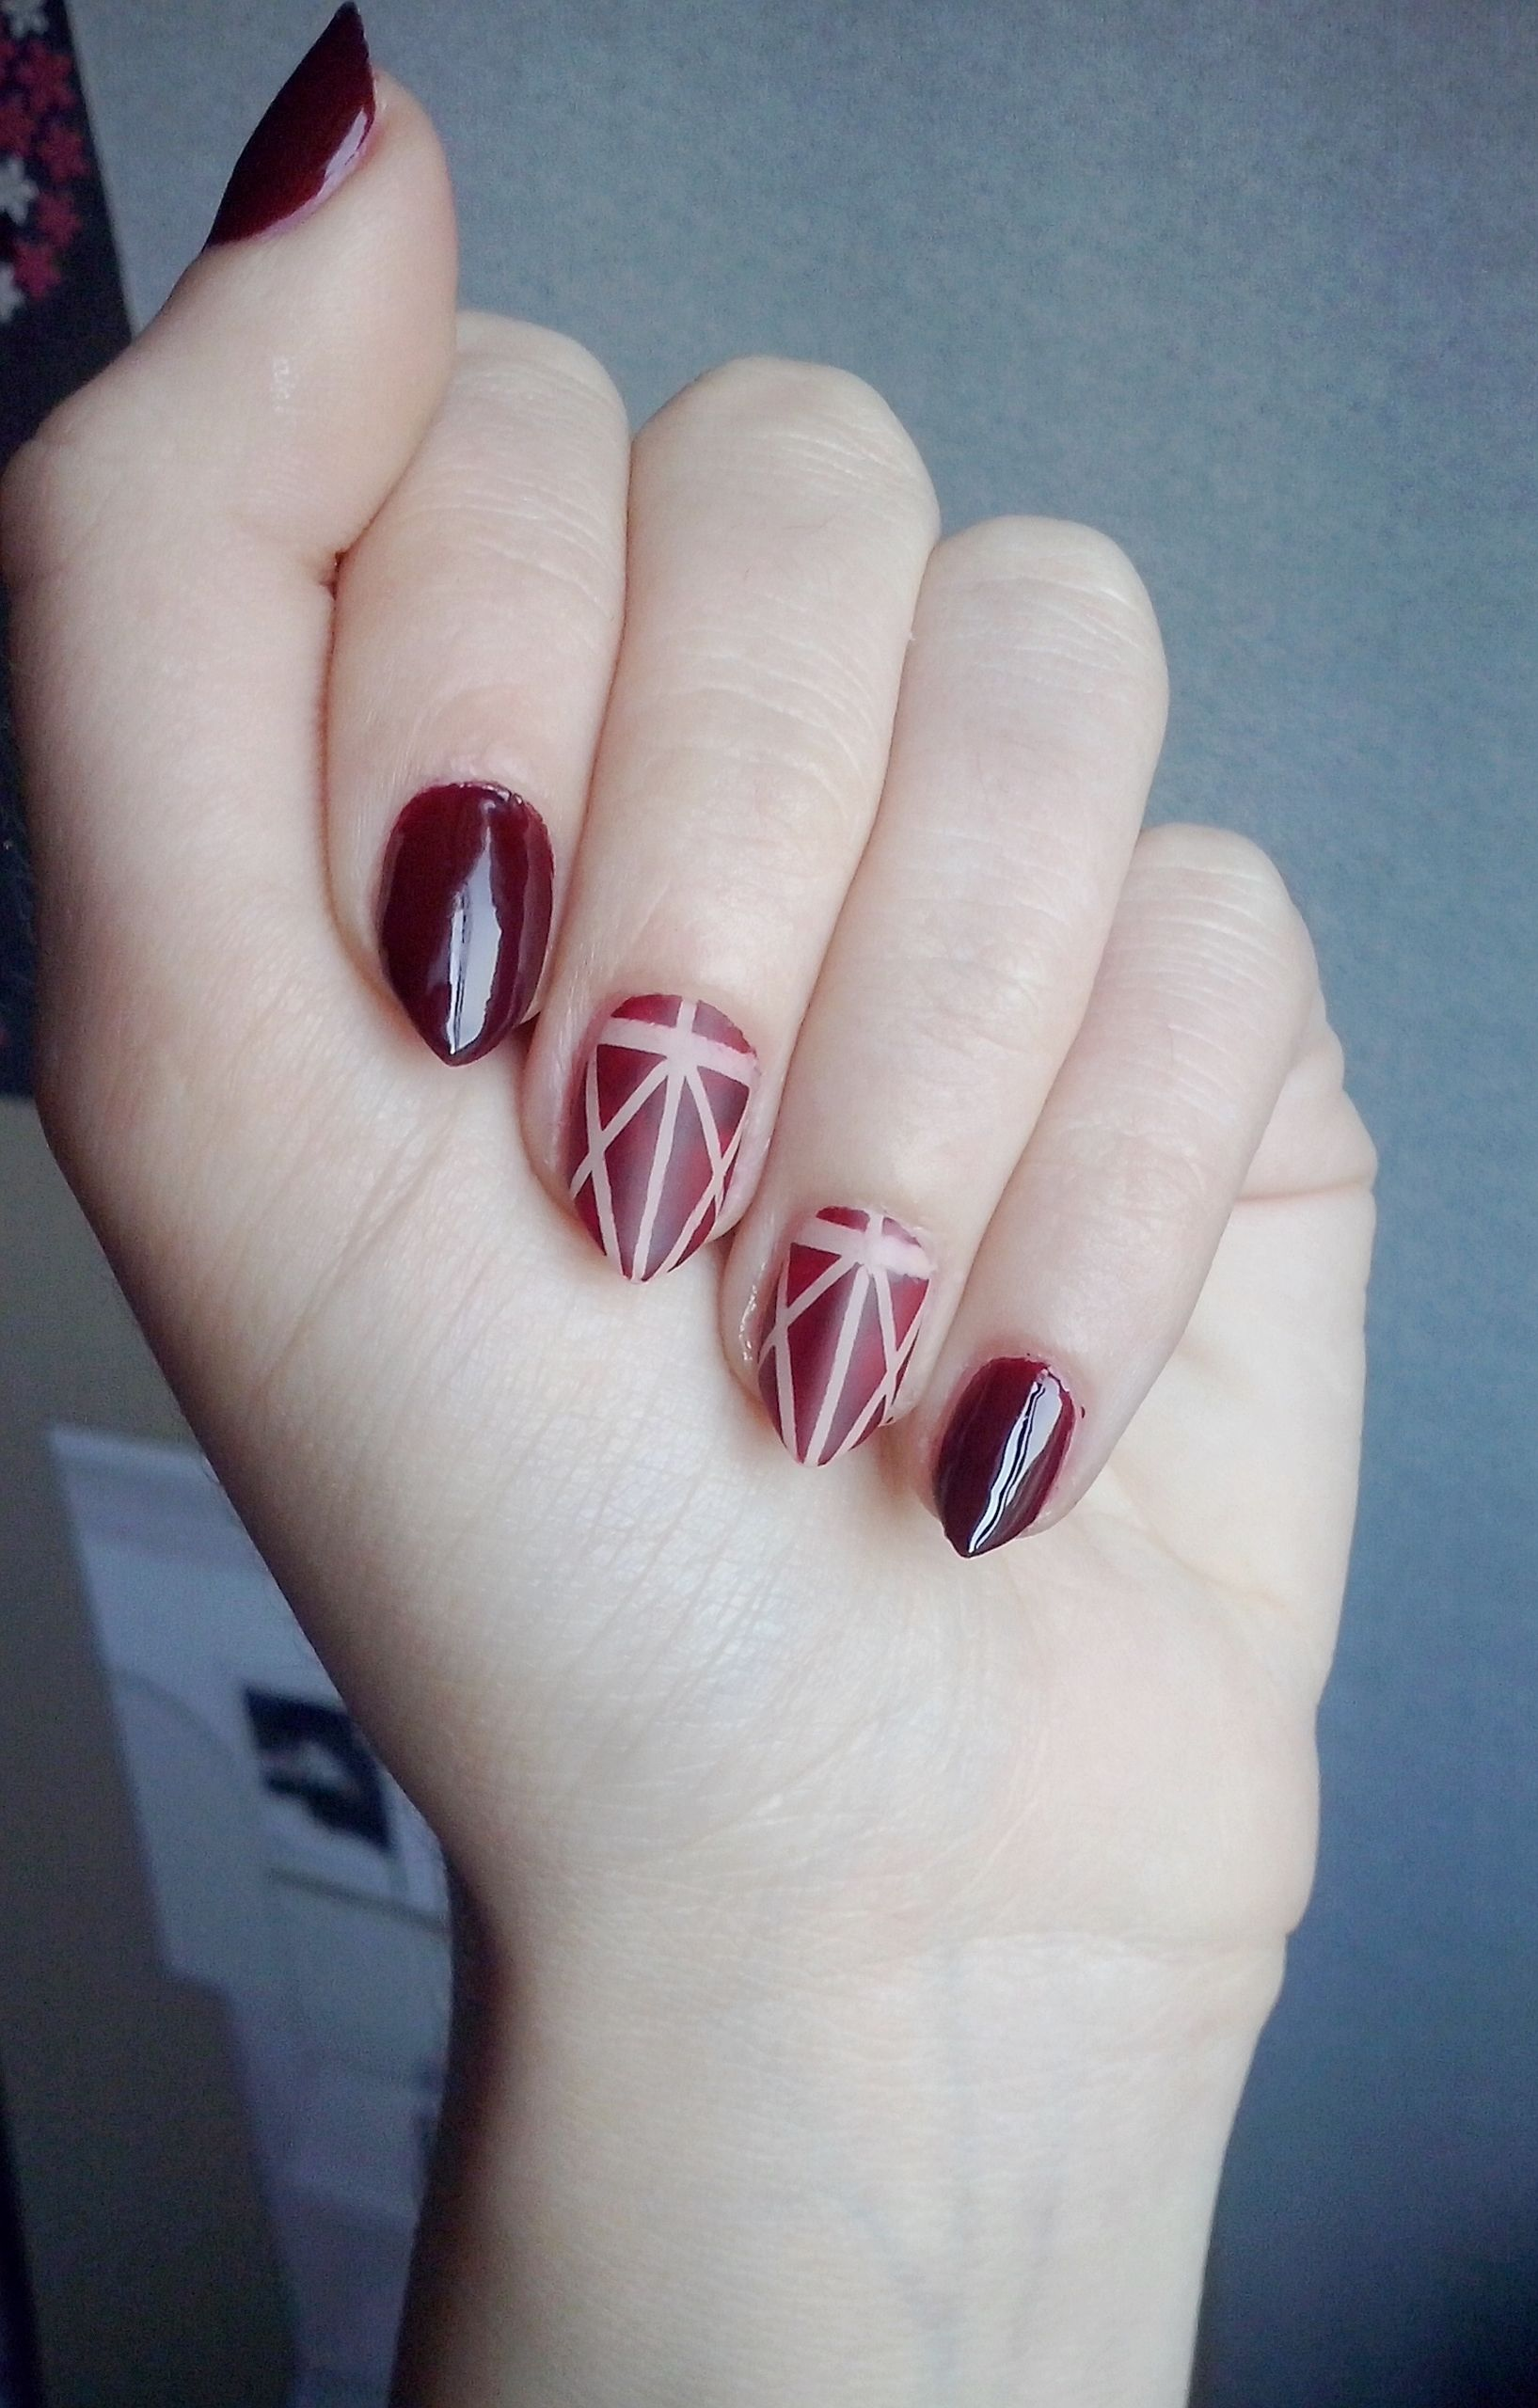 Dark red almond nails | nail designs | Pinterest | Almond nails ...